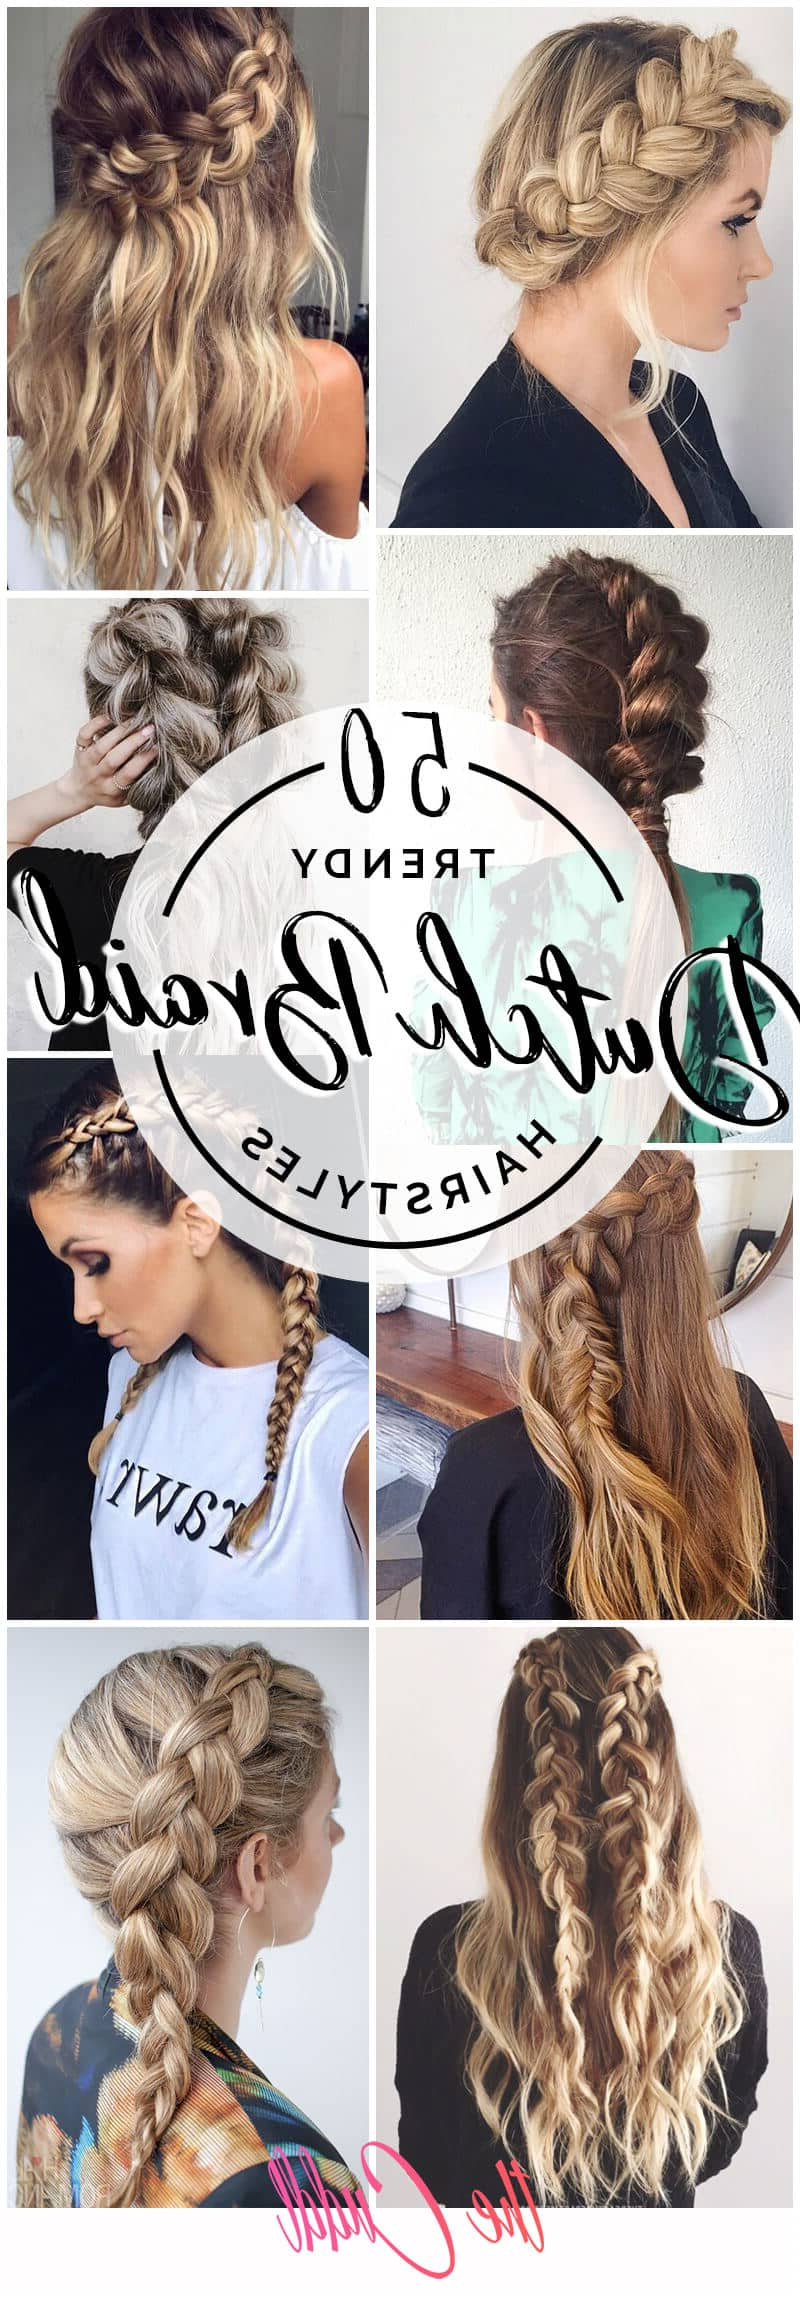 50 Trendy Dutch Braids Hairstyle Ideas To Keep You Cool In 2019 Inside Popular Centre Parted Long Plaits Braid Hairstyles (Gallery 20 of 20)